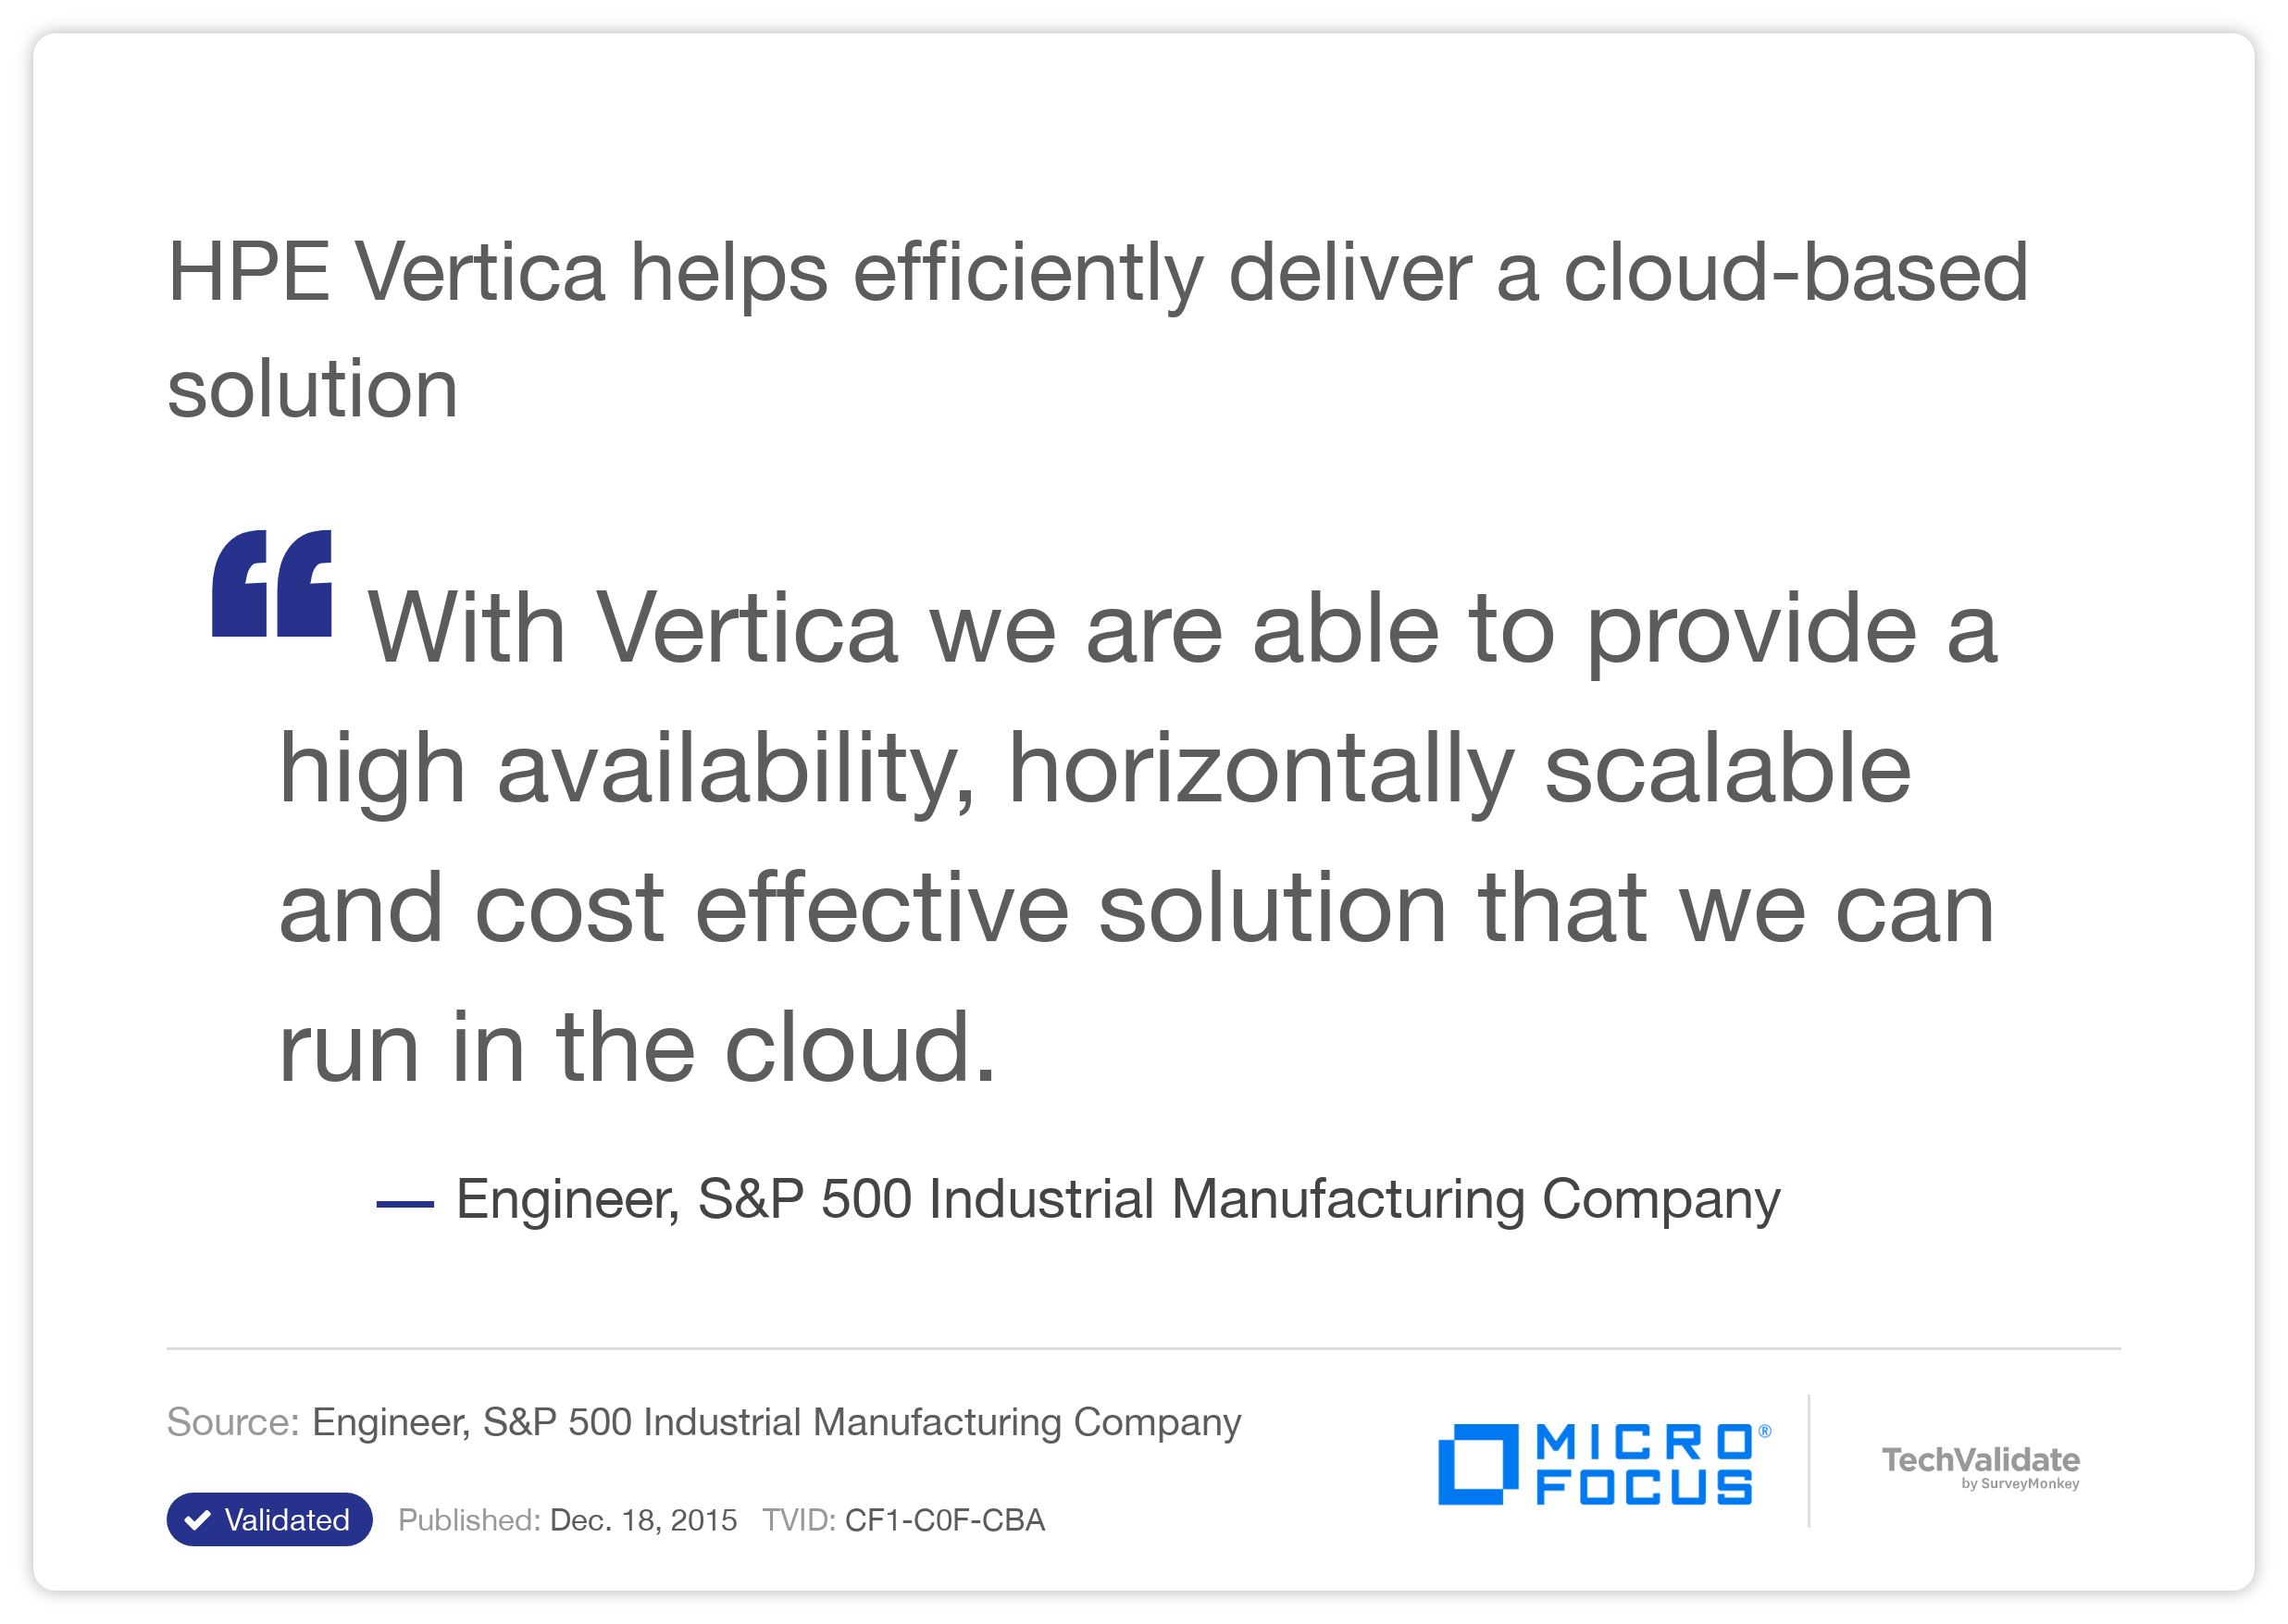 HP Vertica helps efficiently deliver a cloud-based solution